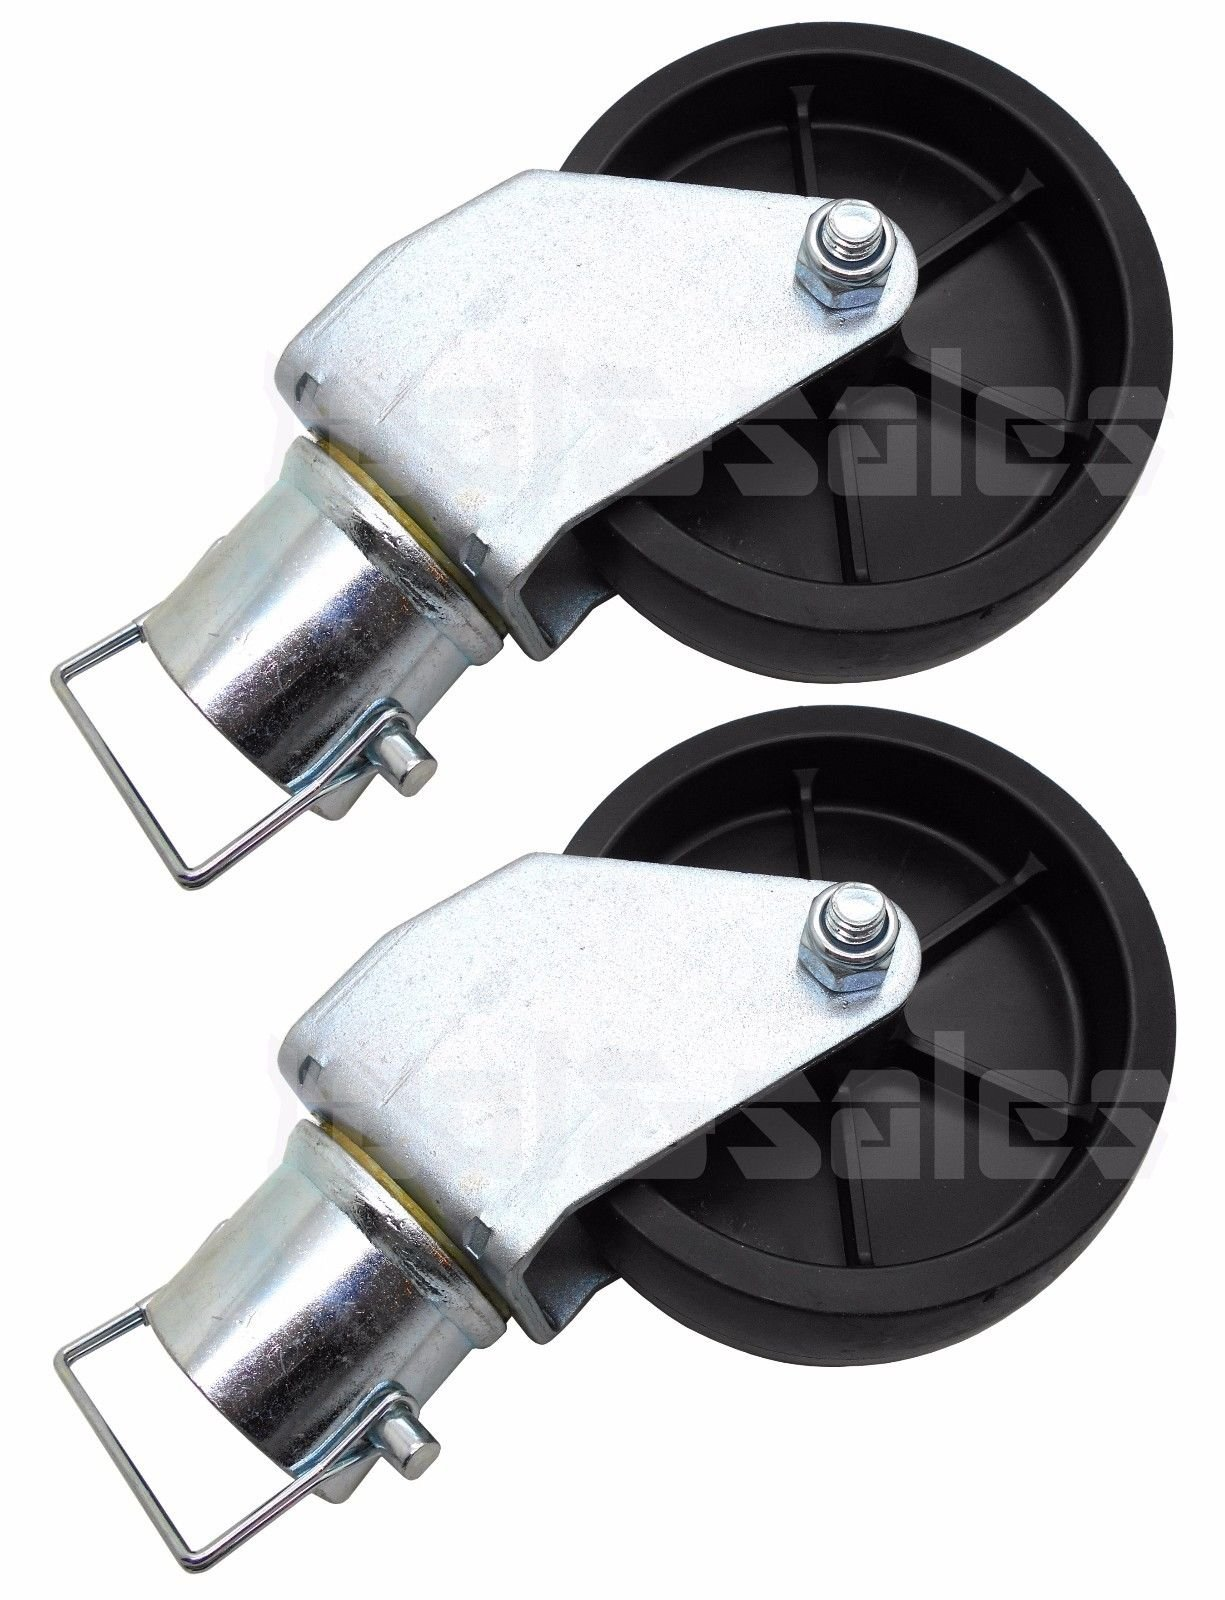 (Lot of 2) 12000lbs 6 Trailer Swirl Jack Caster Wheel w/Safety Pin Boat Hitch